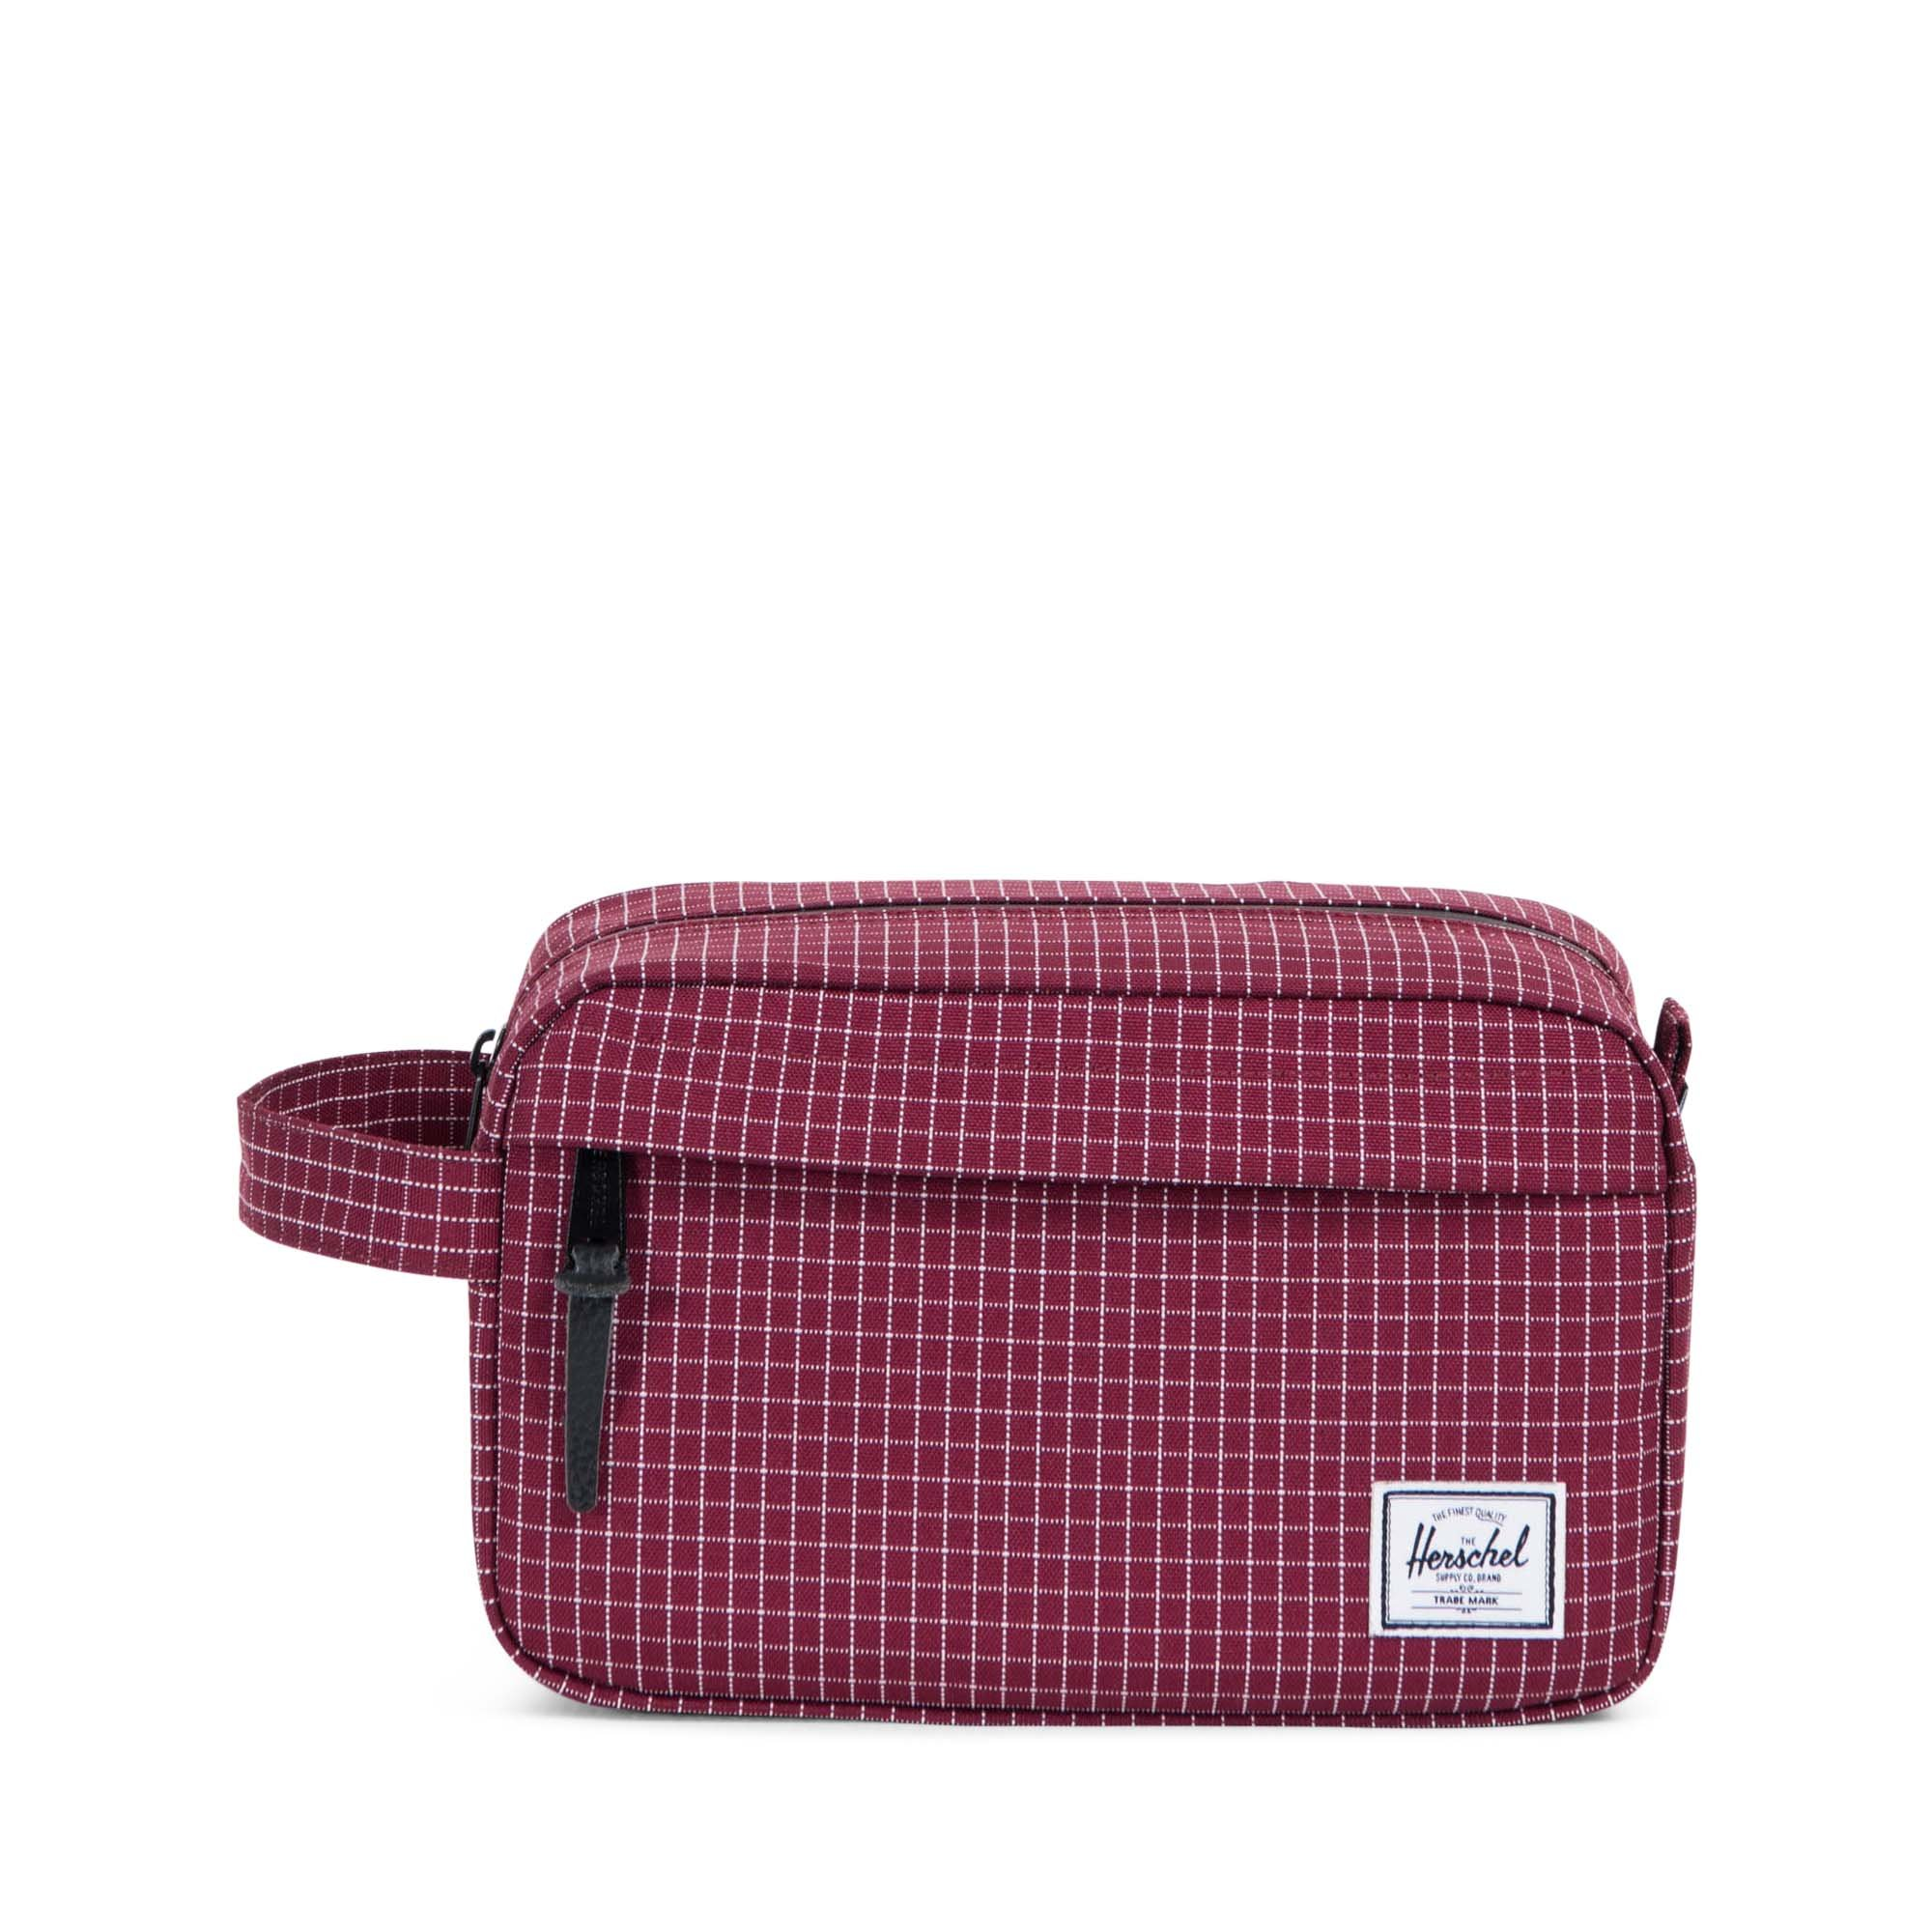 Herschel Supply Co. Chapter Travel Kit, Windsor Wine Grid